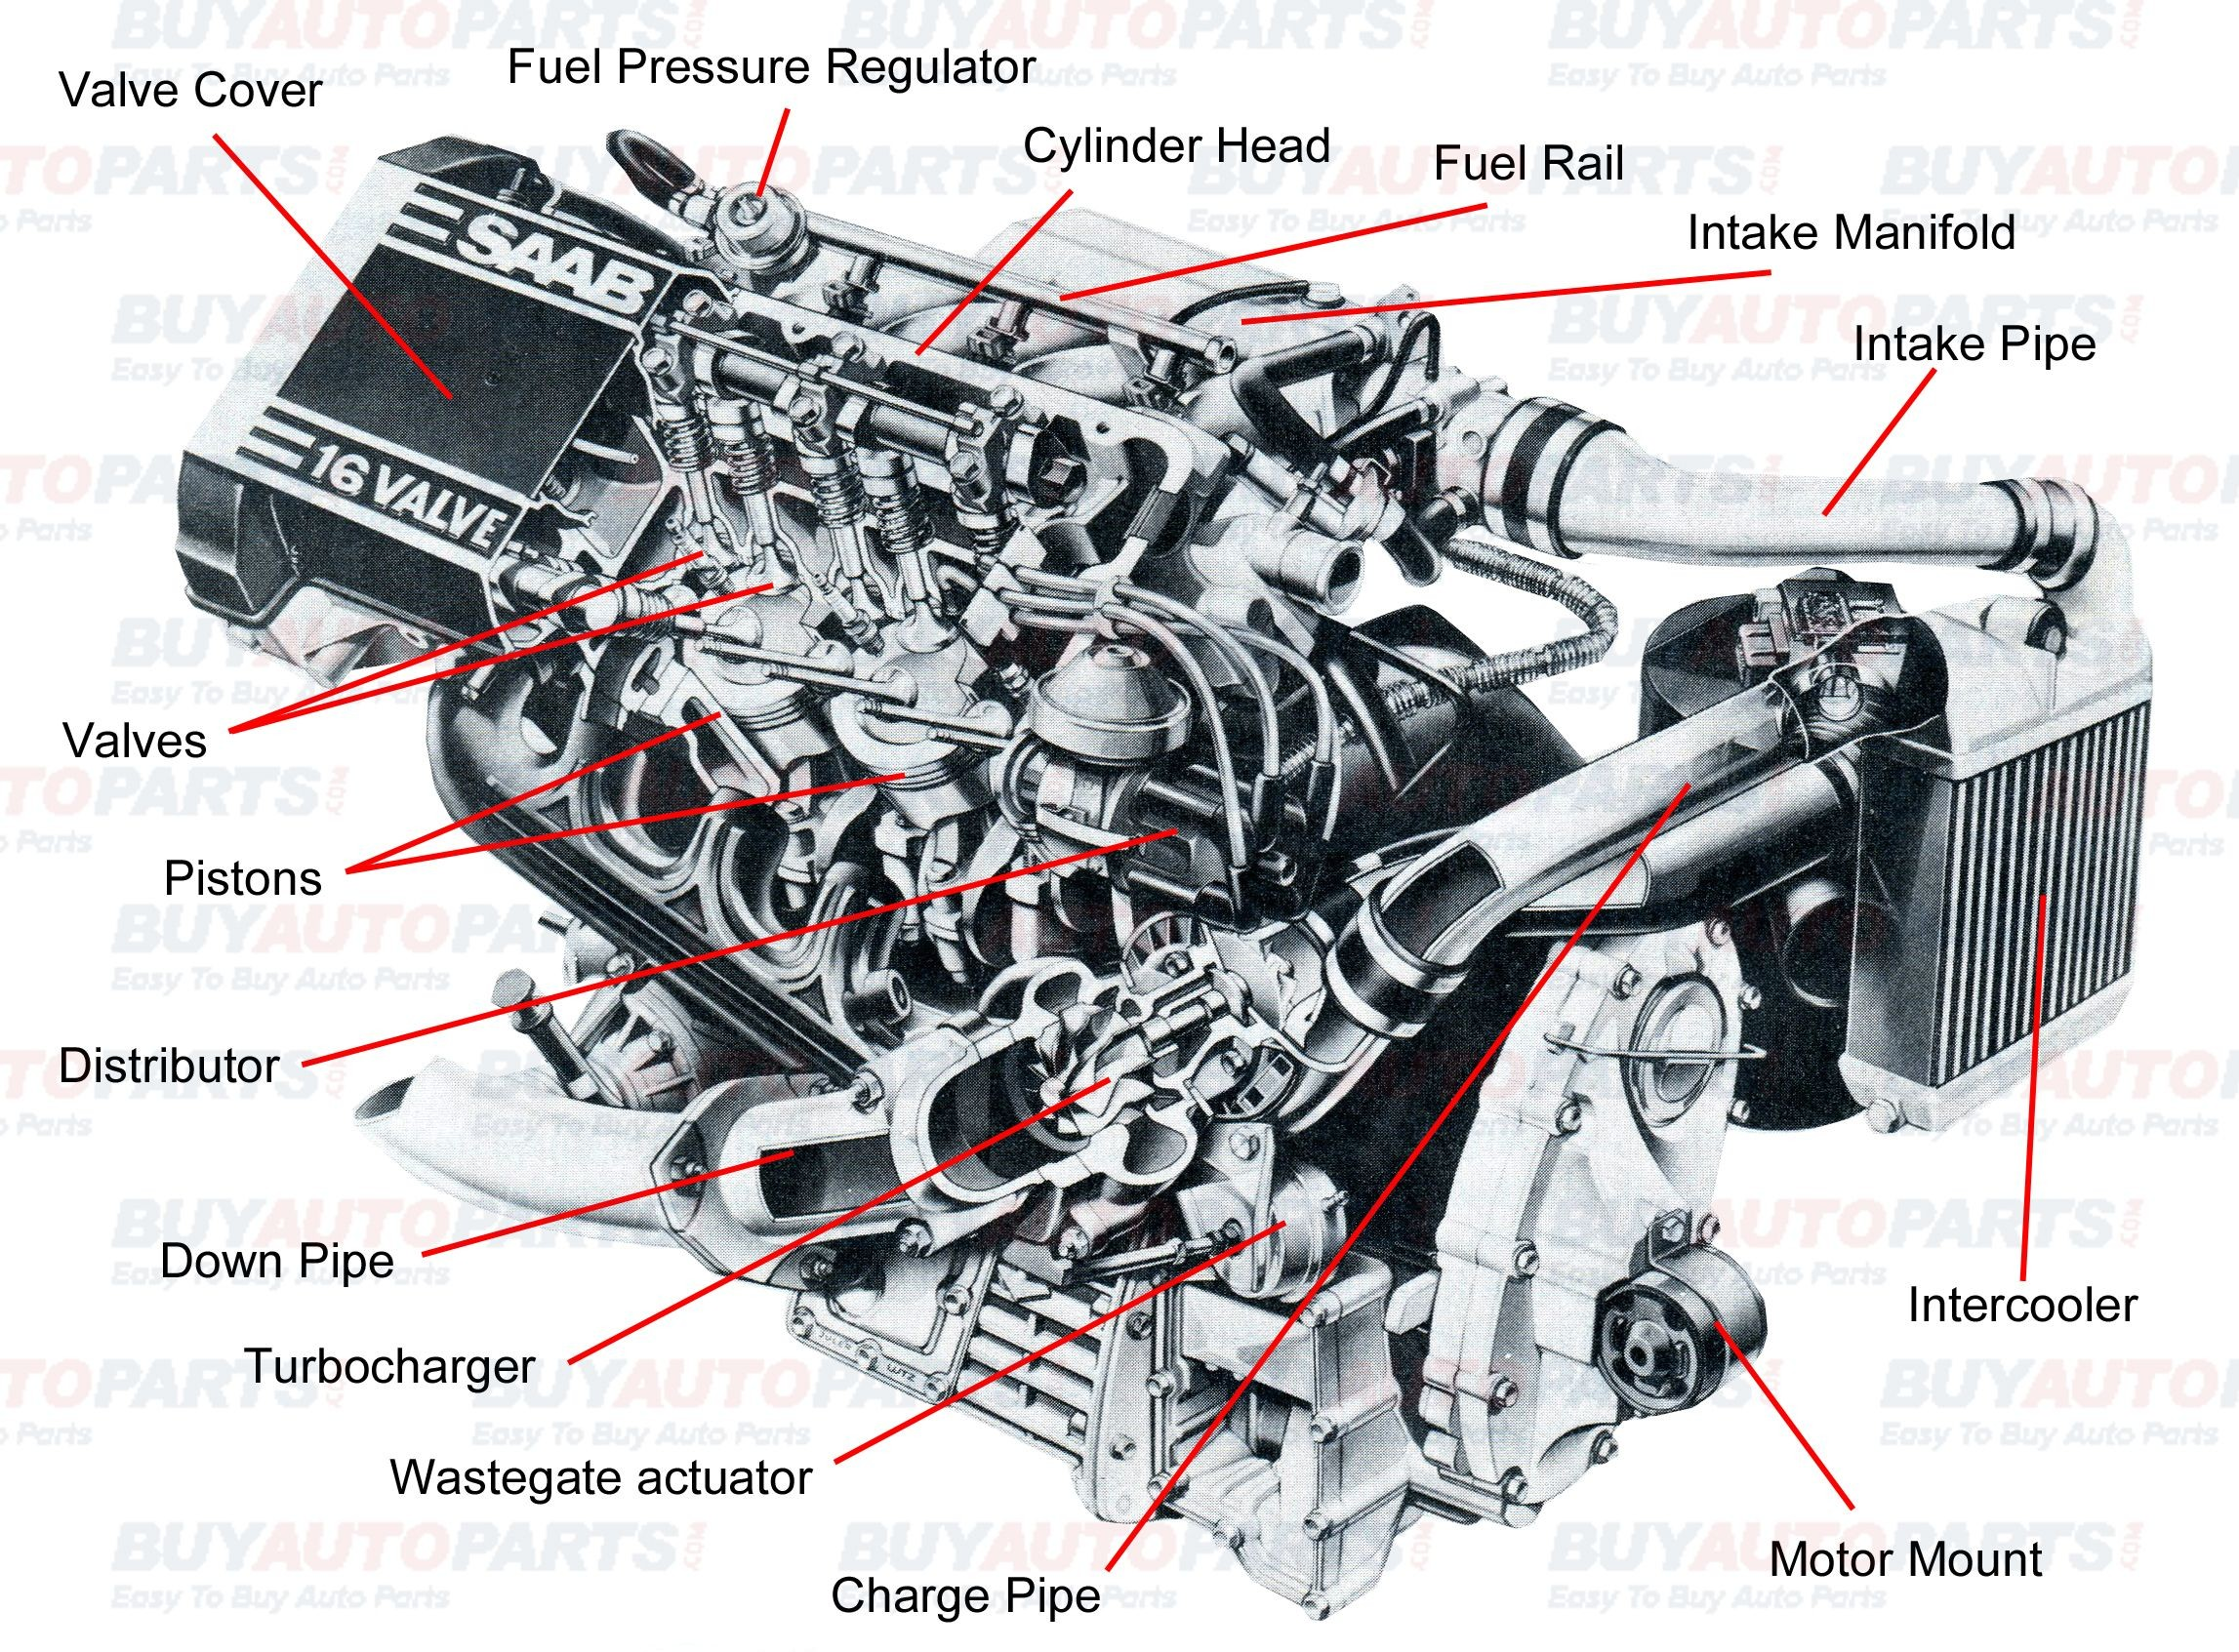 Basic Car Engine Diagram All Internal Bustion Engines Have the Same Basic Ponents the Of Basic Car Engine Diagram